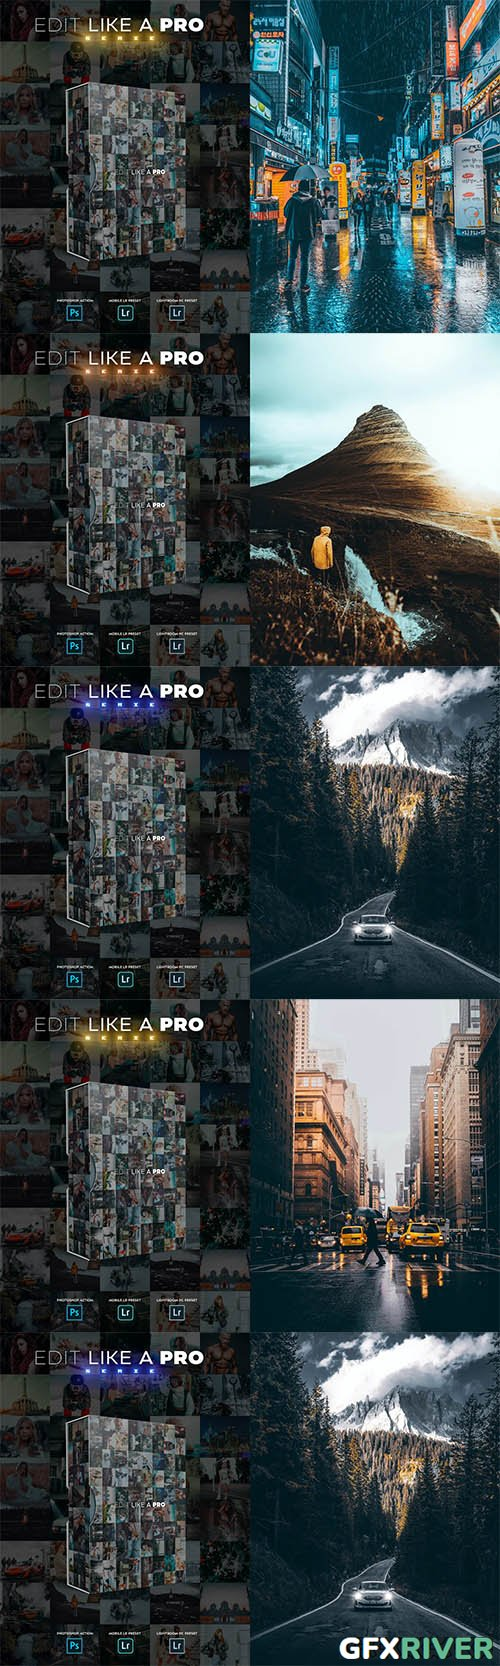 Edit Like A PRO 28-32th - Photoshop & Lightroom